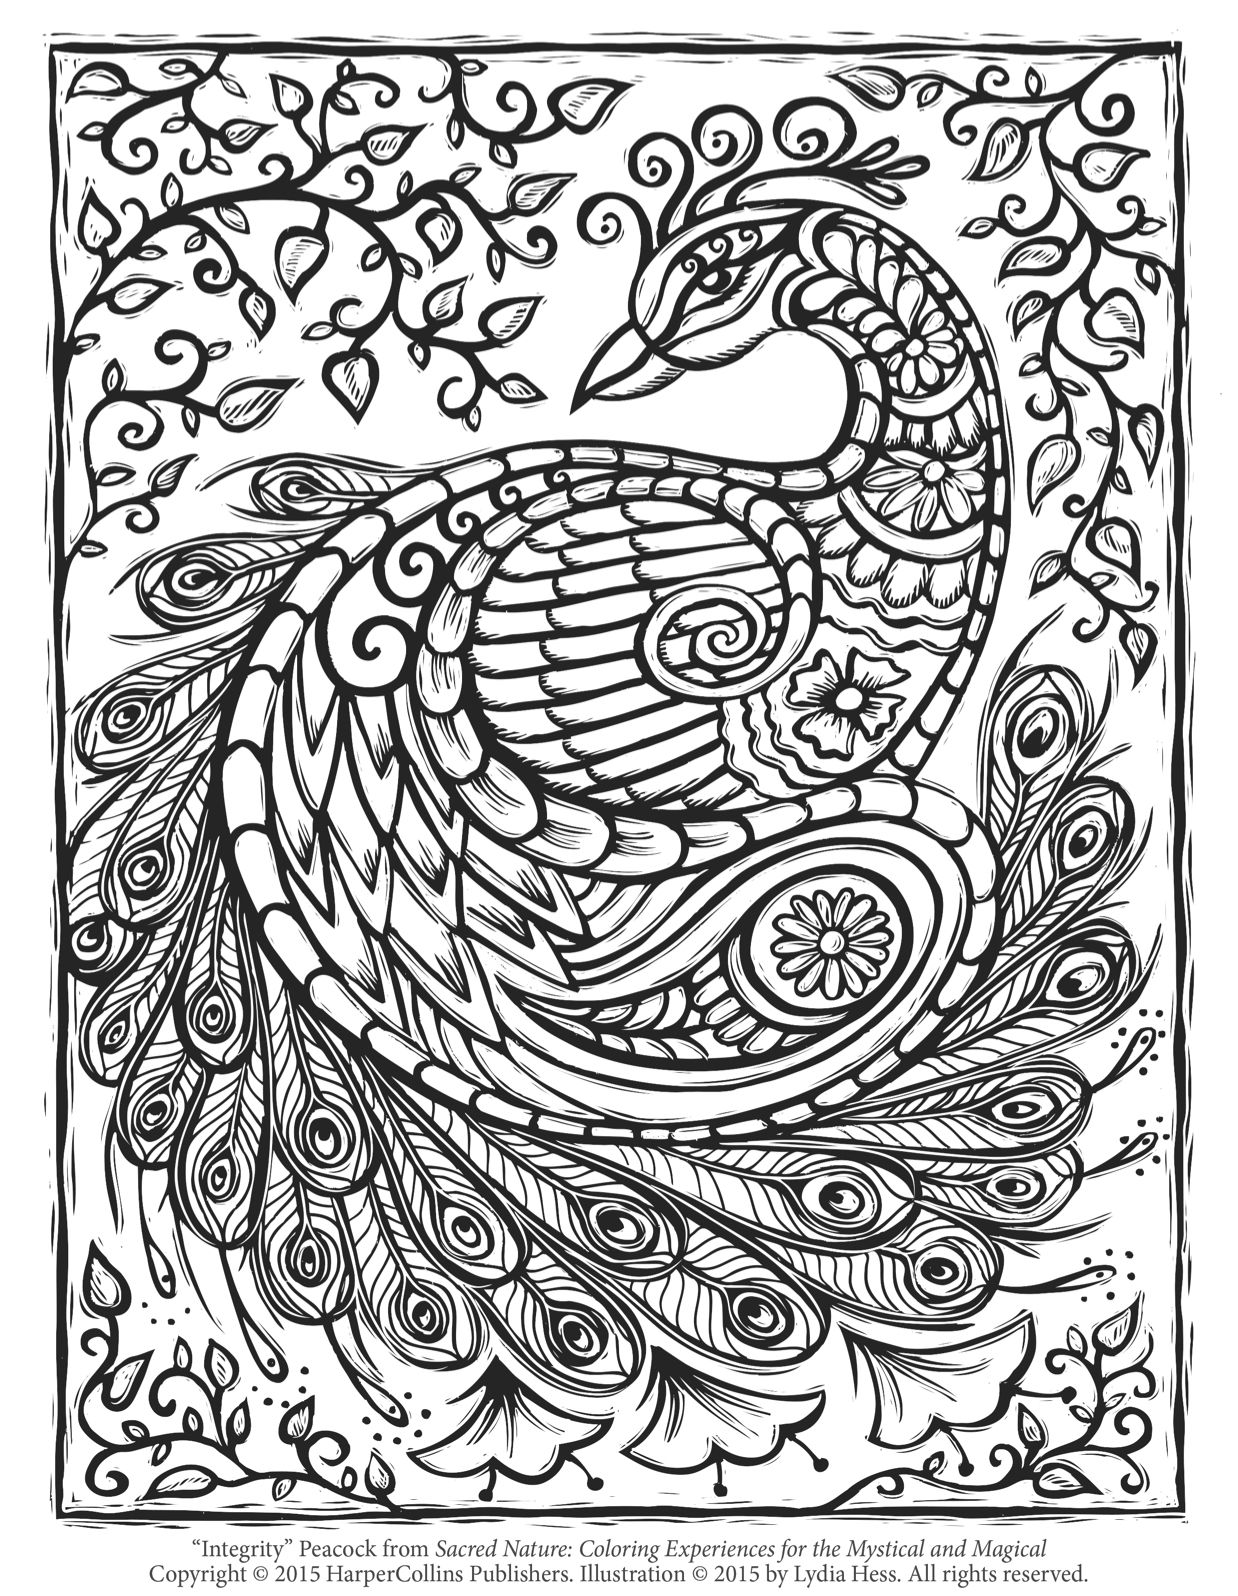 Free Peacock Adult Coloring Page Craftfoxes Downloads For